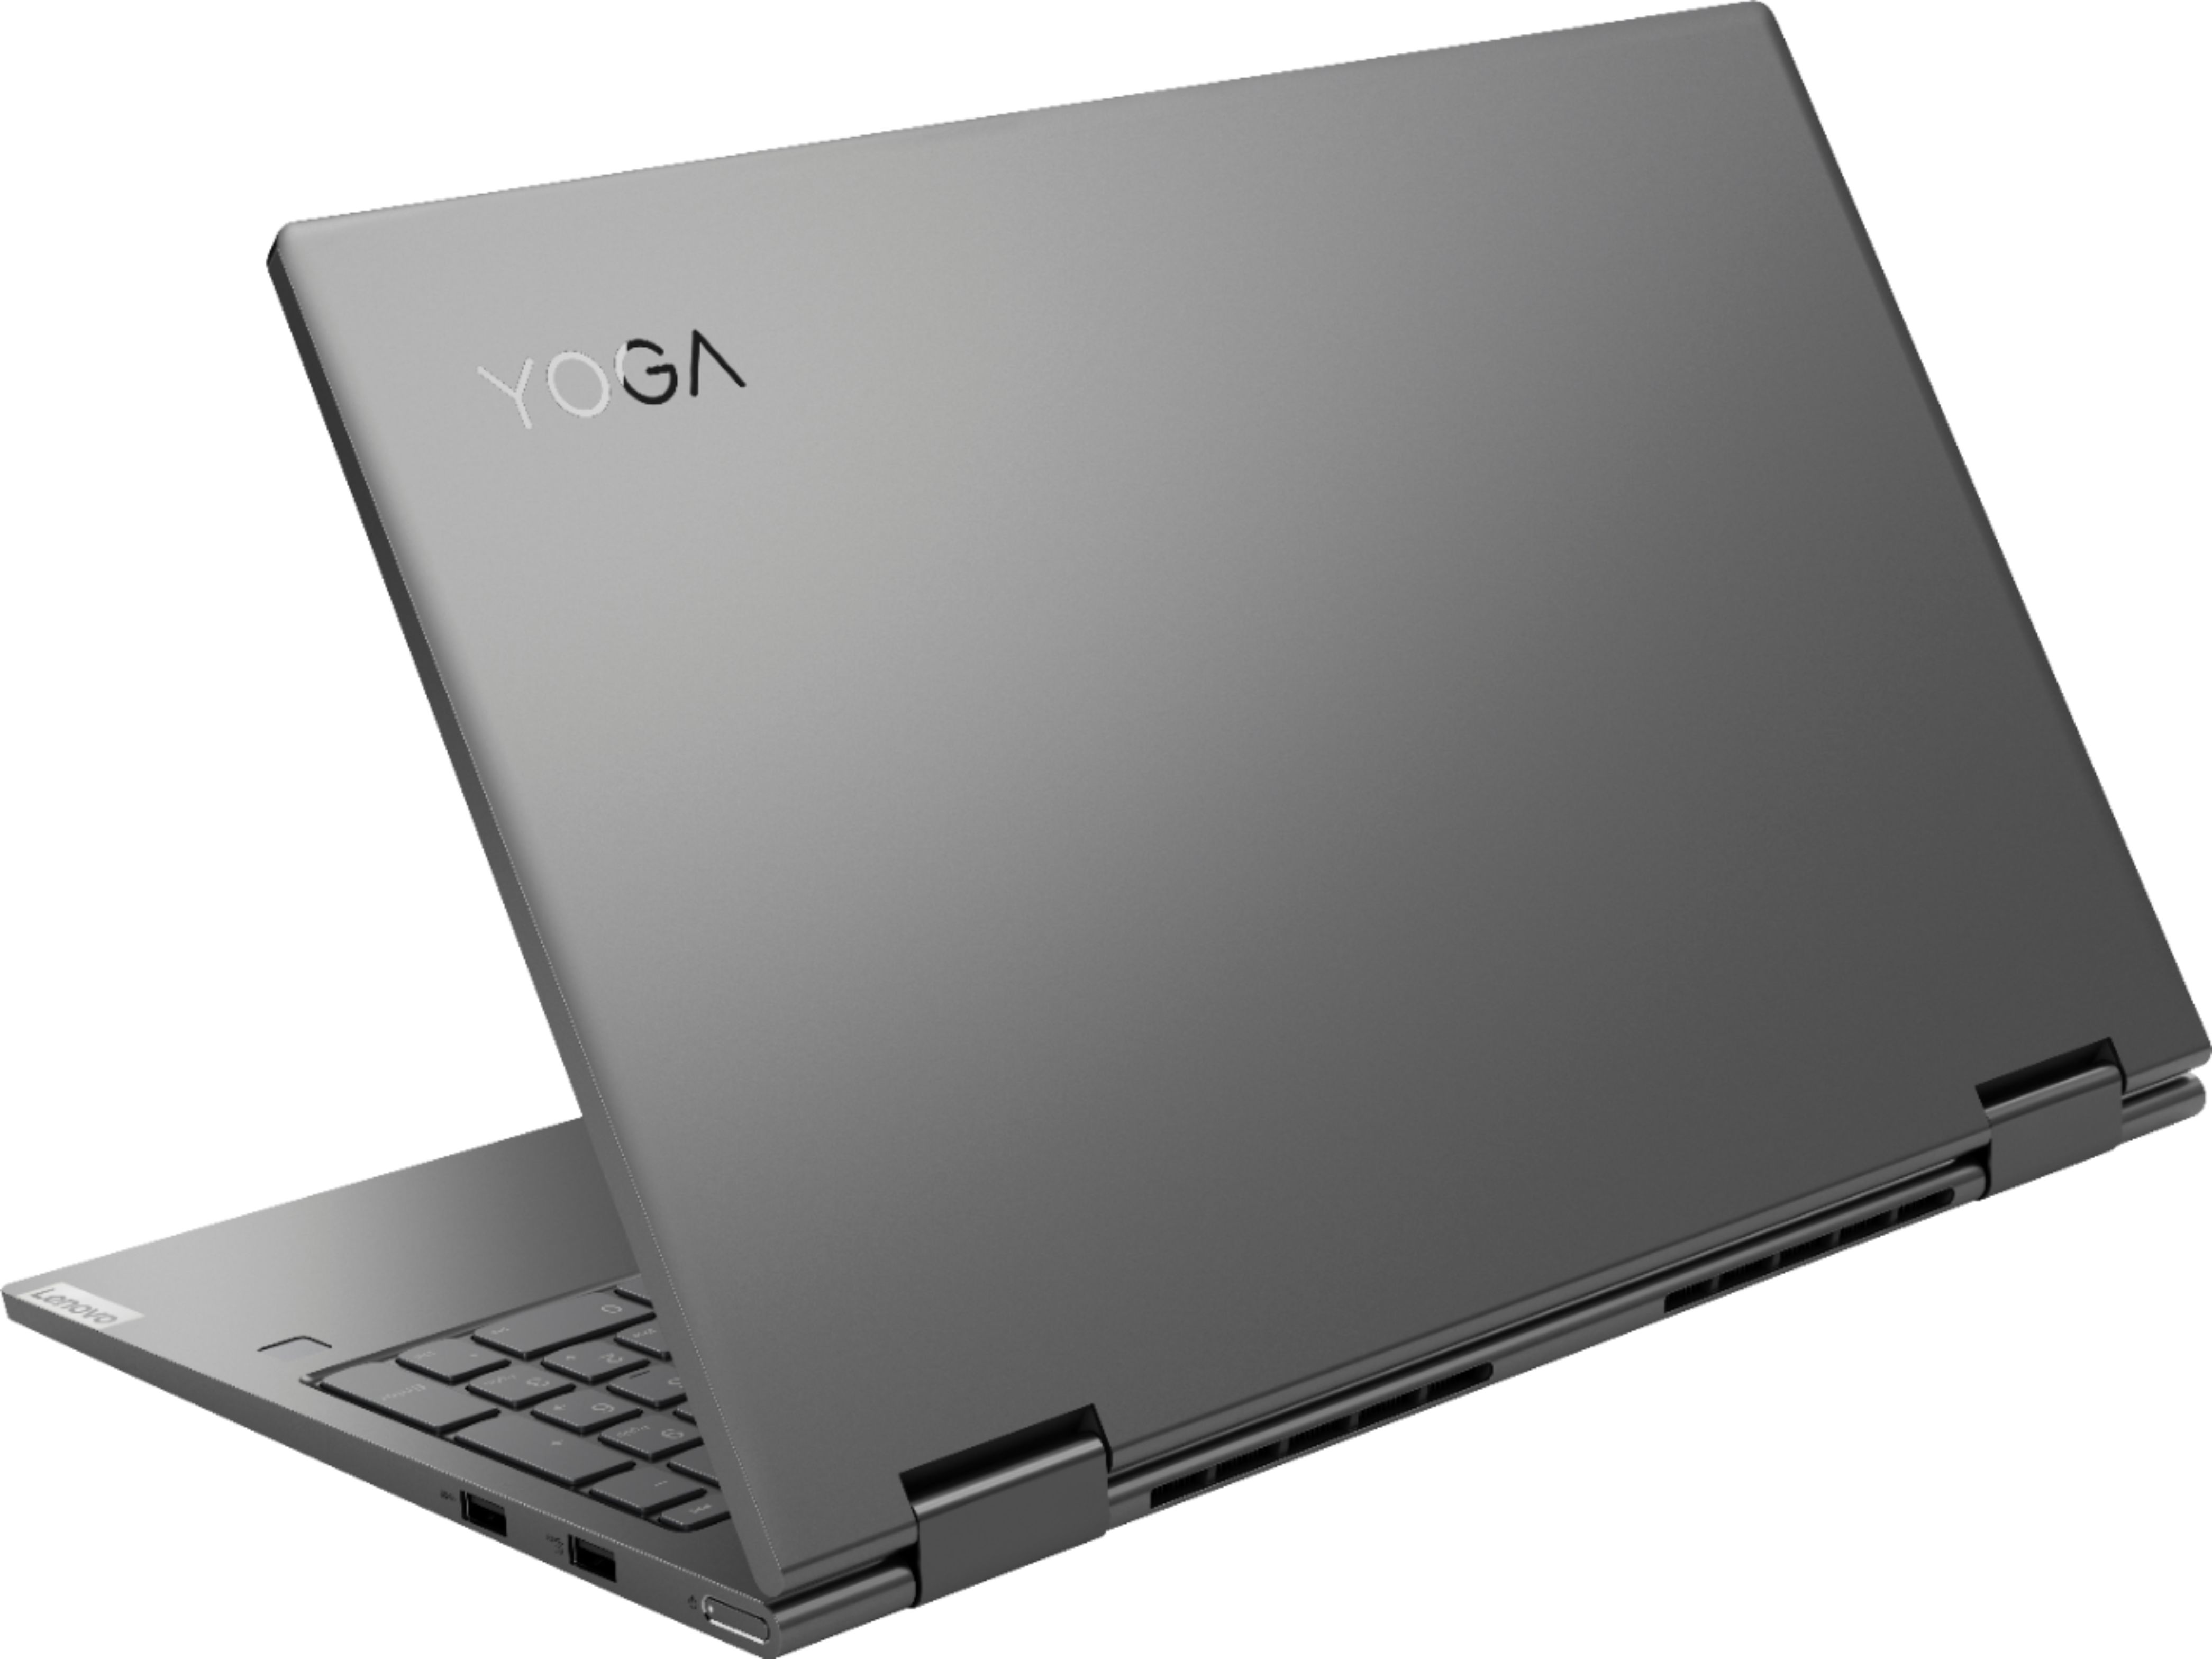 """Alt View Zoom 1. Lenovo - Yoga C740 2-in-1 15.6"""" Touch-Screen Laptop - Intel Core i5 - 12GB Memory - 256GB Solid State Drive - Iron Gray."""